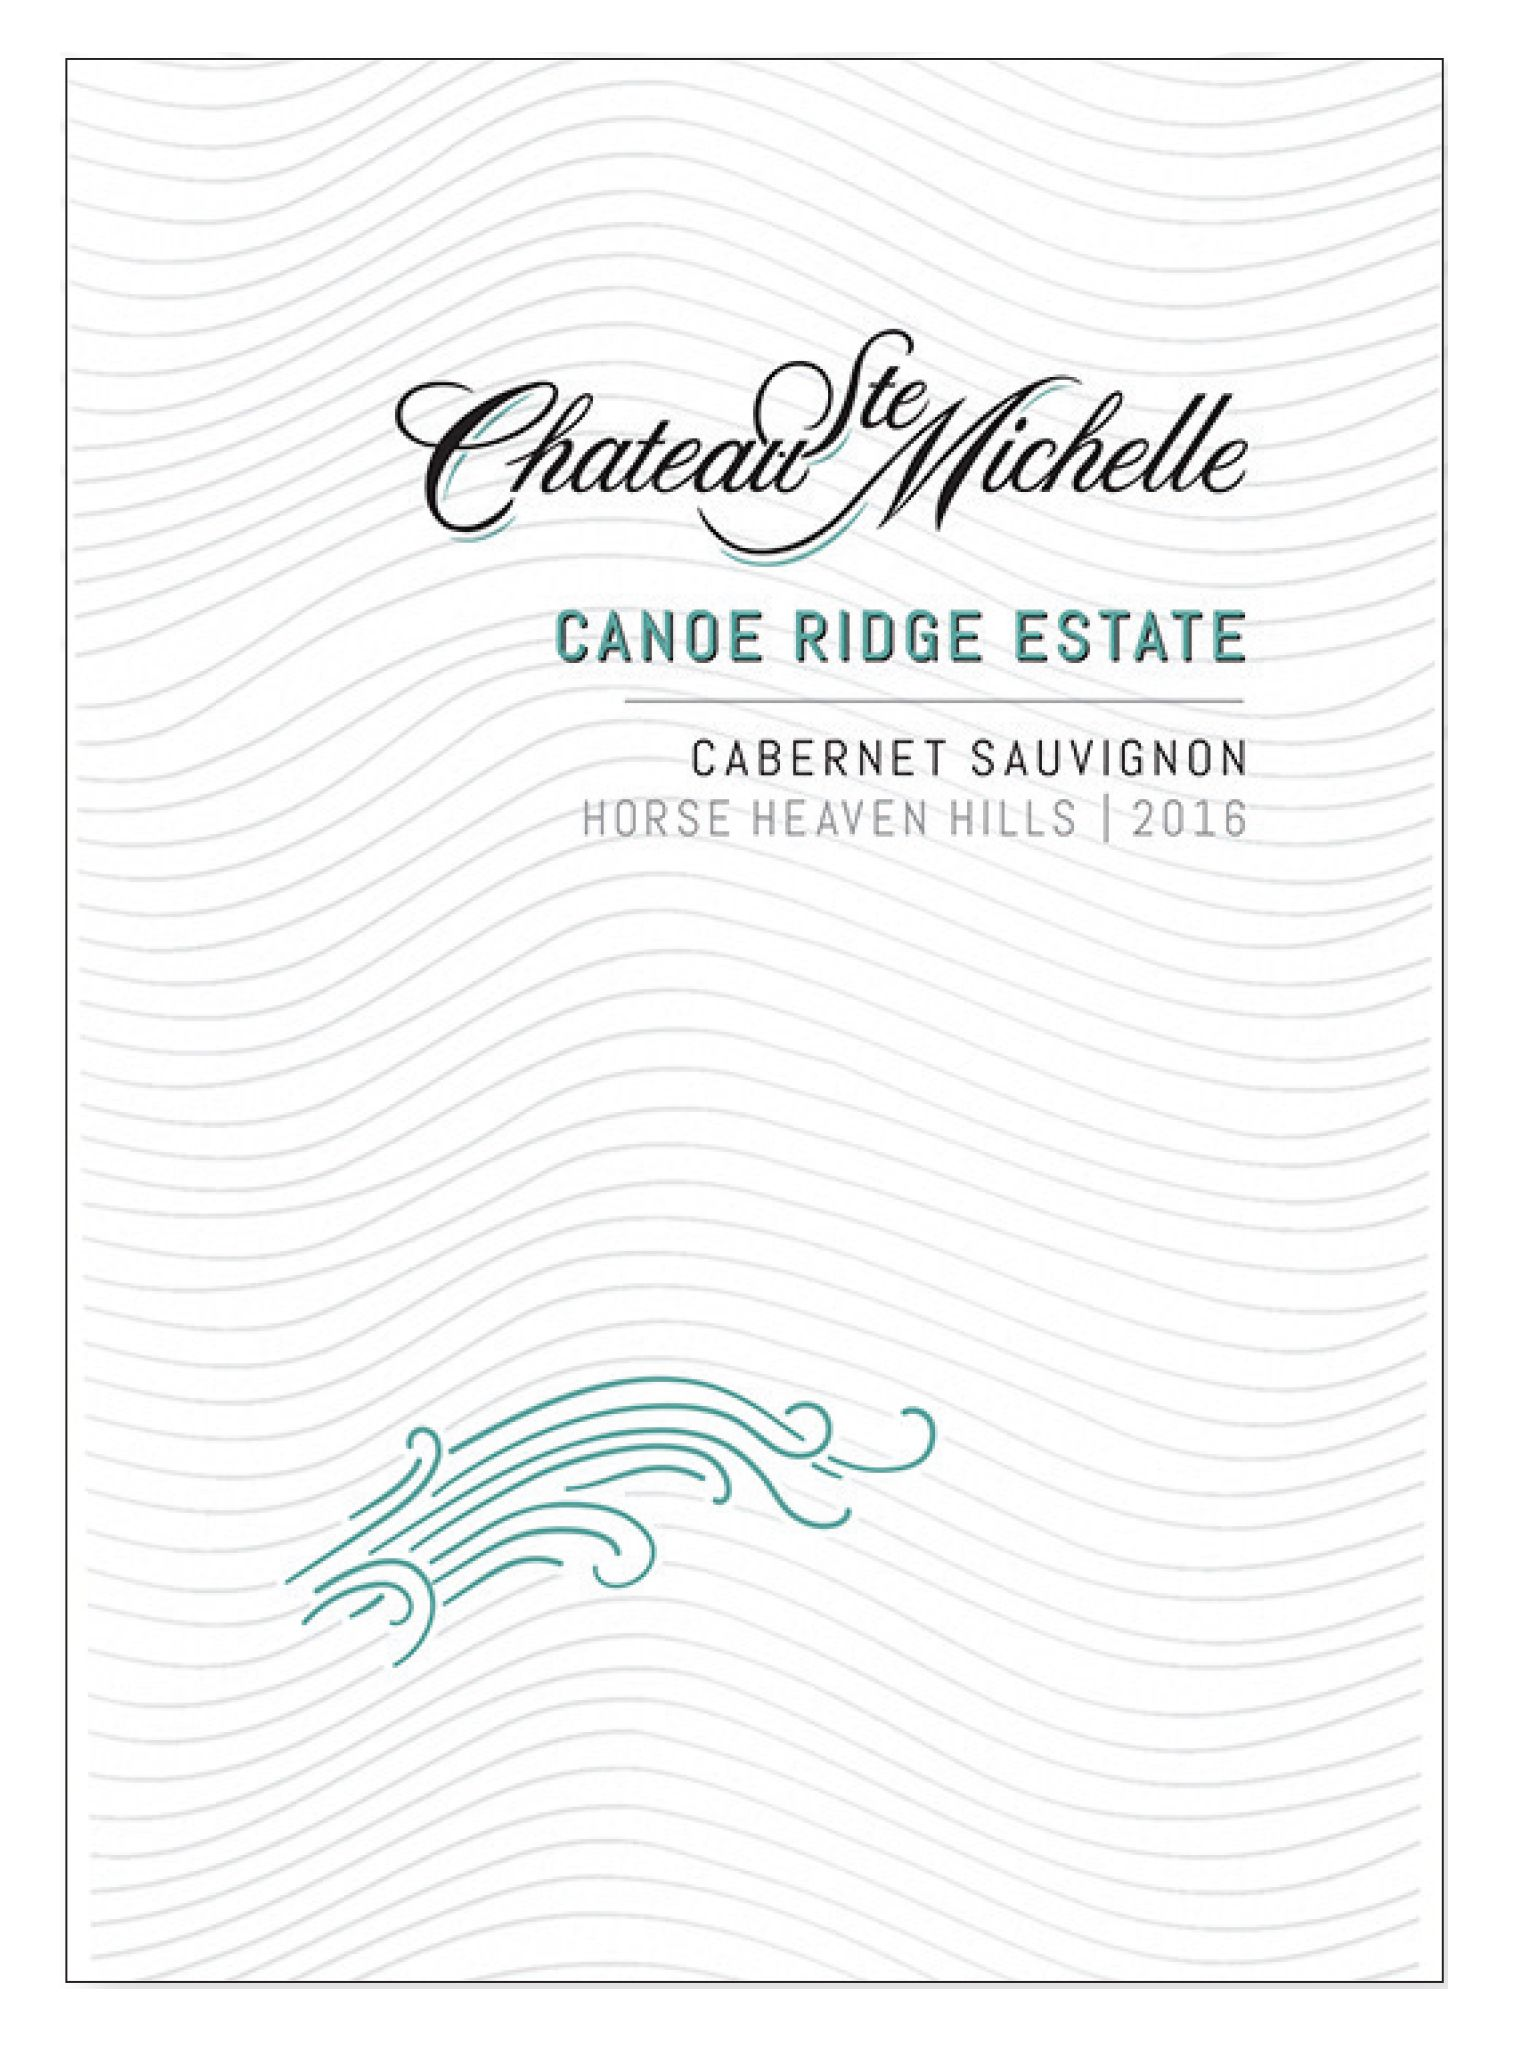 Chateau Ste. Michelle Canoe Ridge Estate Cabernet Sauvignon 2016  Front Label